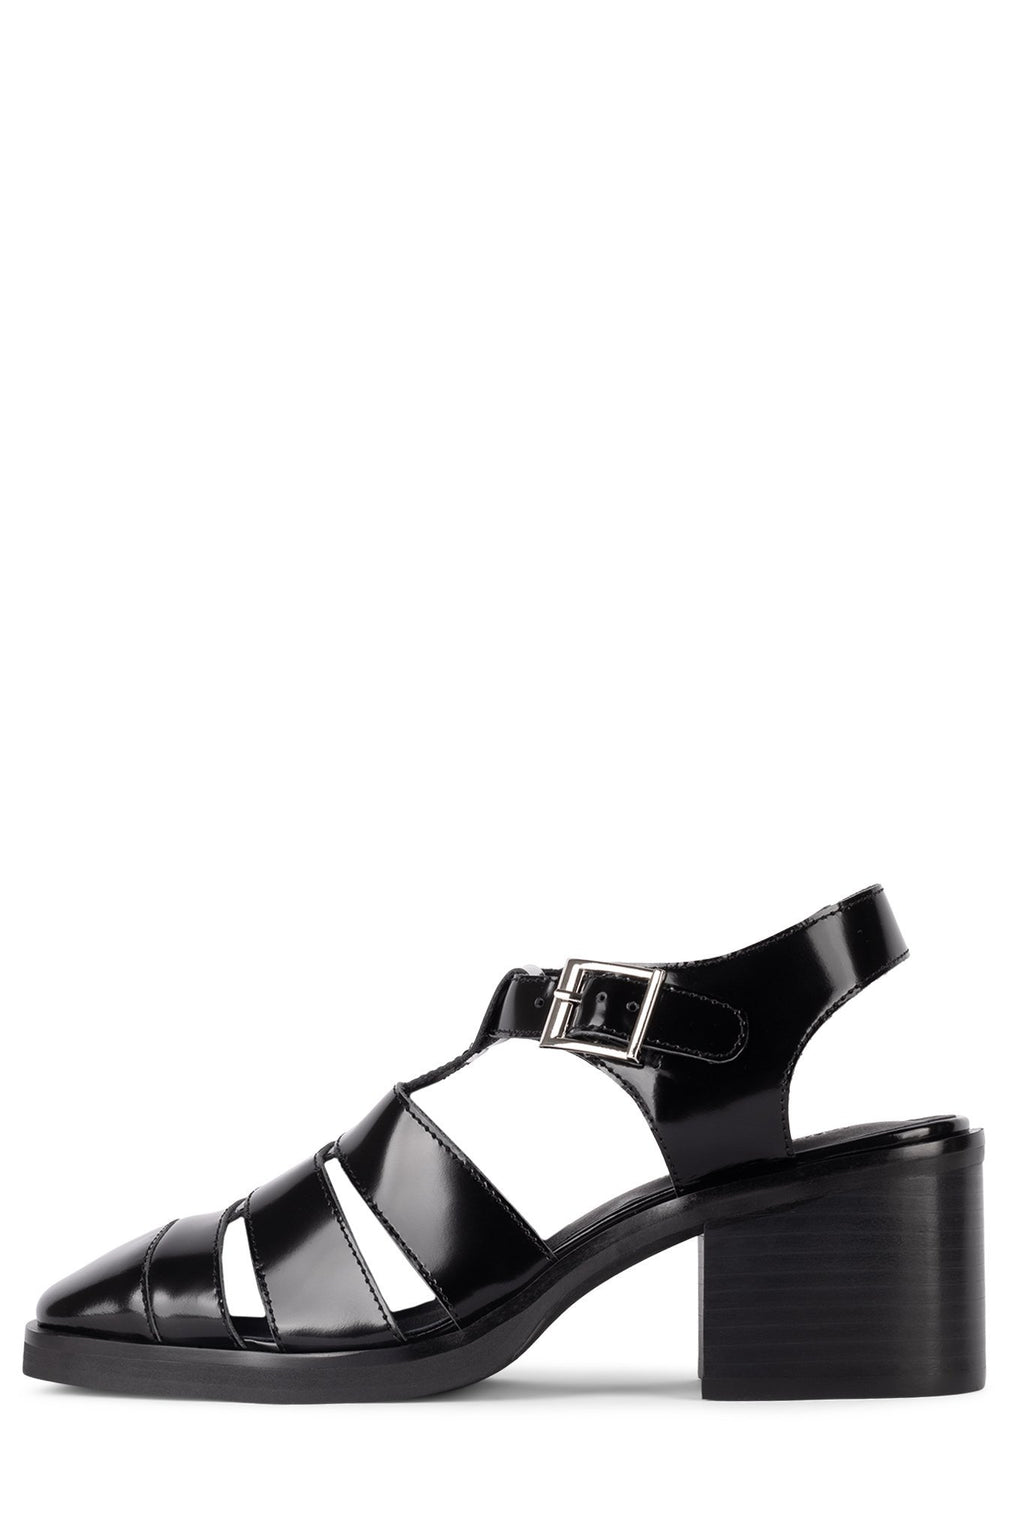 FINLAY Jeffrey Campbell Black Box 6